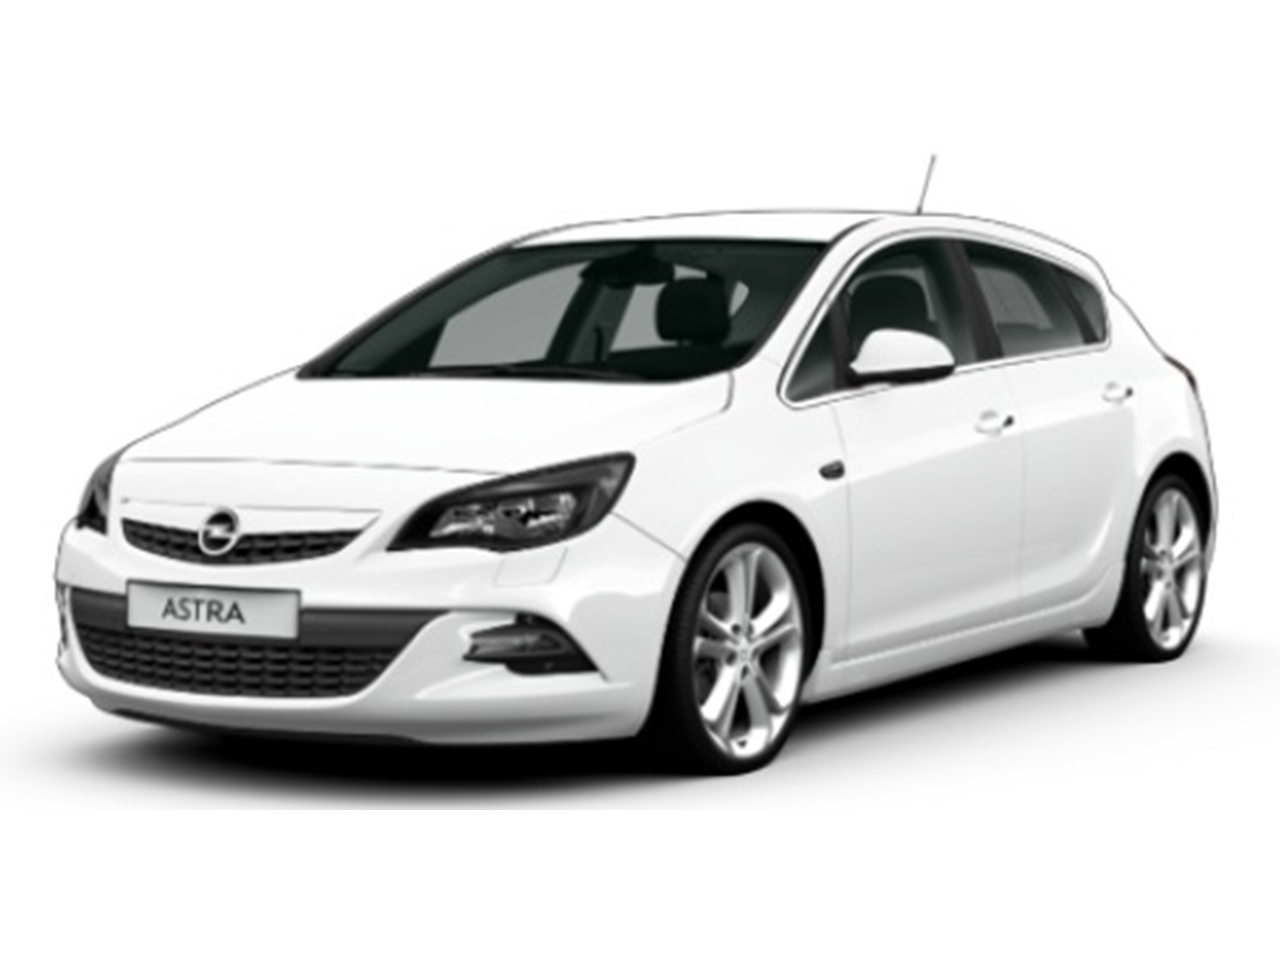 2017 opel astra hatchback prices in uae gulf specs reviews for dubai abu dhabi and sharjah. Black Bedroom Furniture Sets. Home Design Ideas